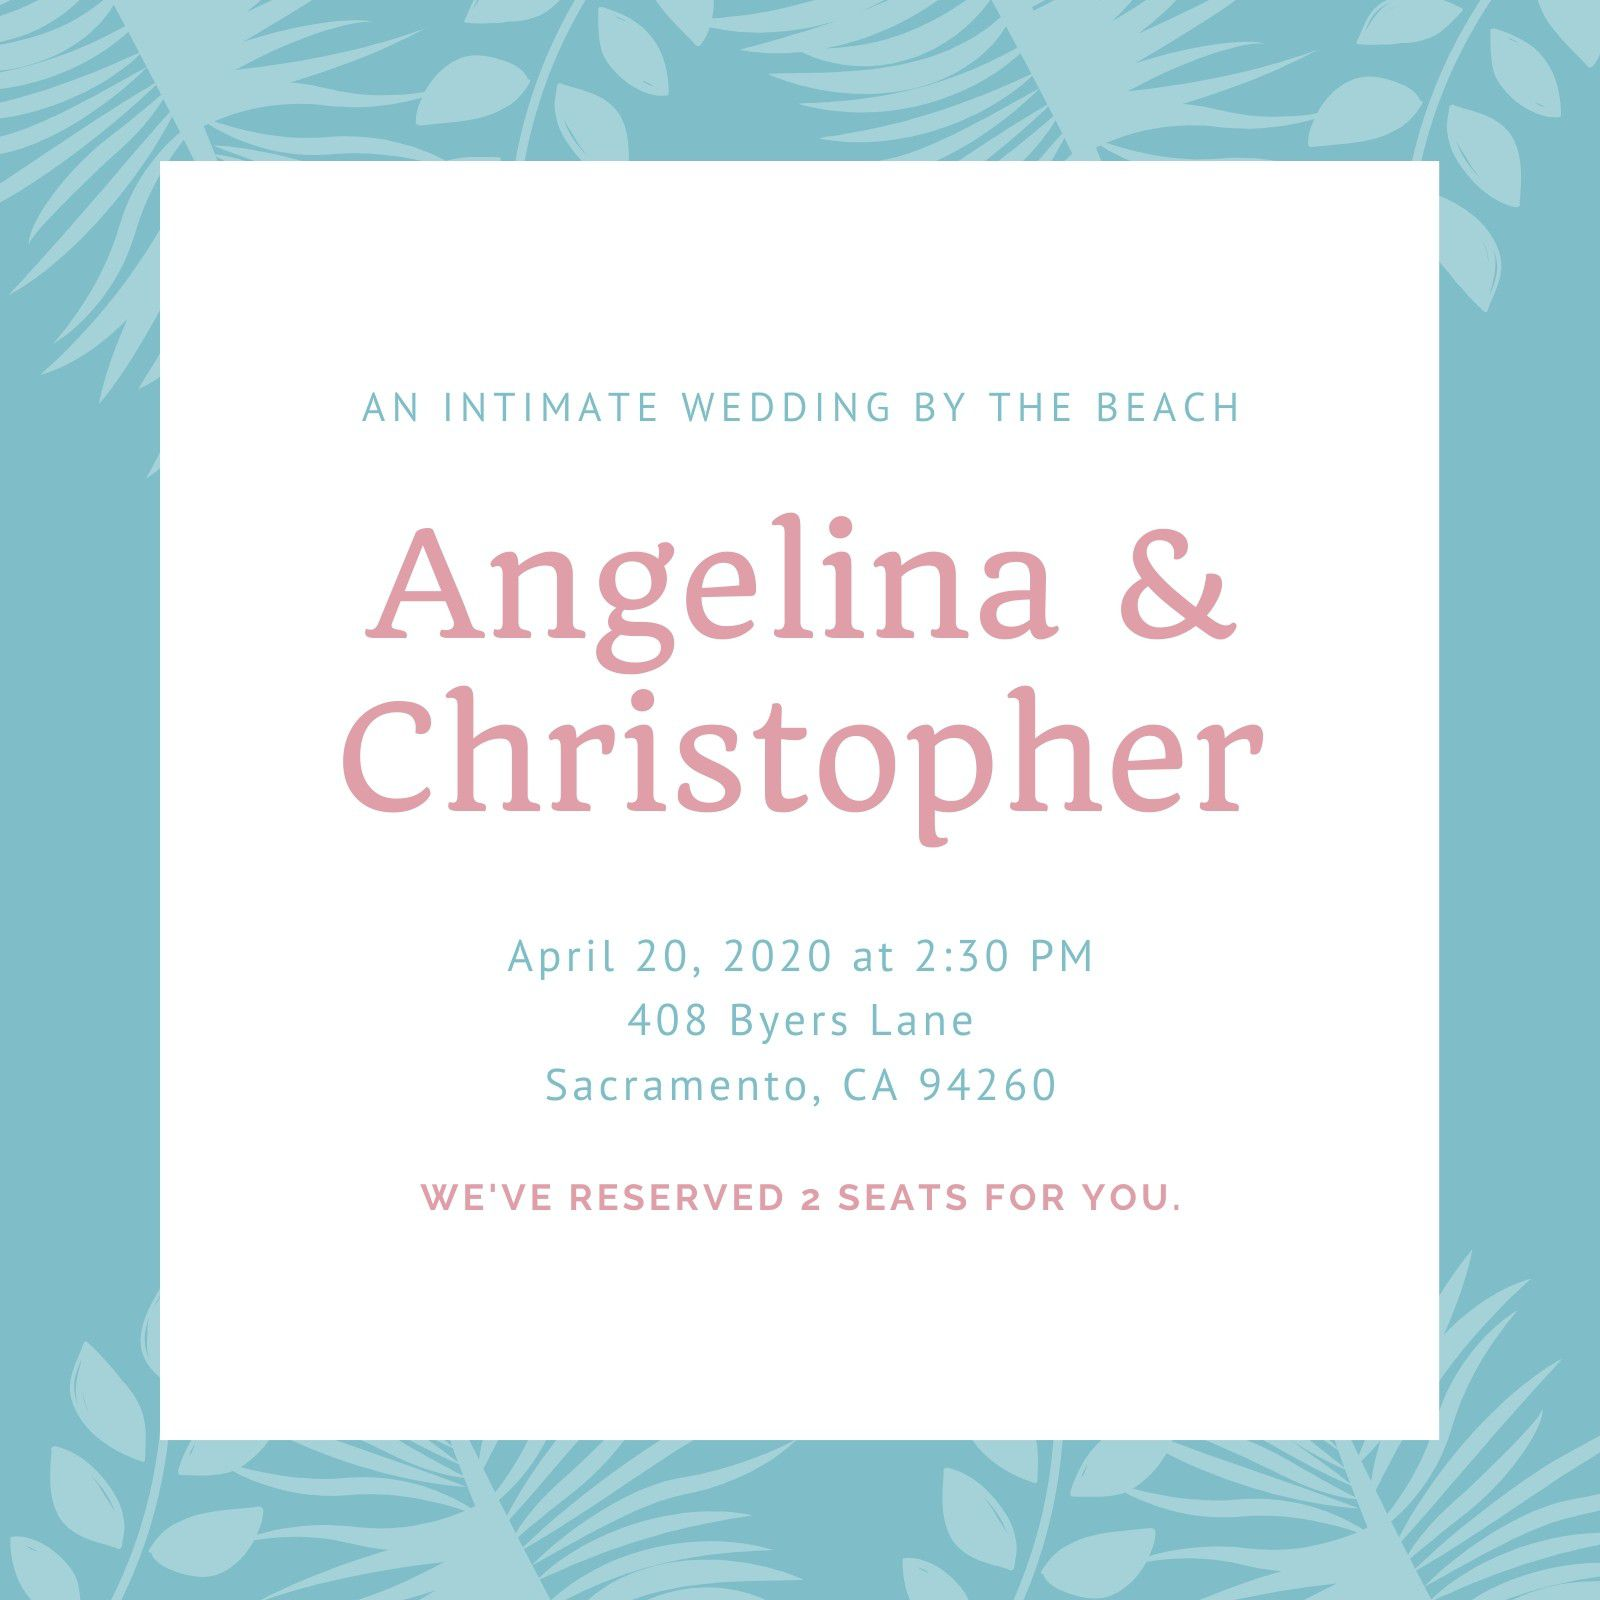 002 Wonderful Beach Wedding Invitation Template Highest Clarity  Templates Free Download For WordFull